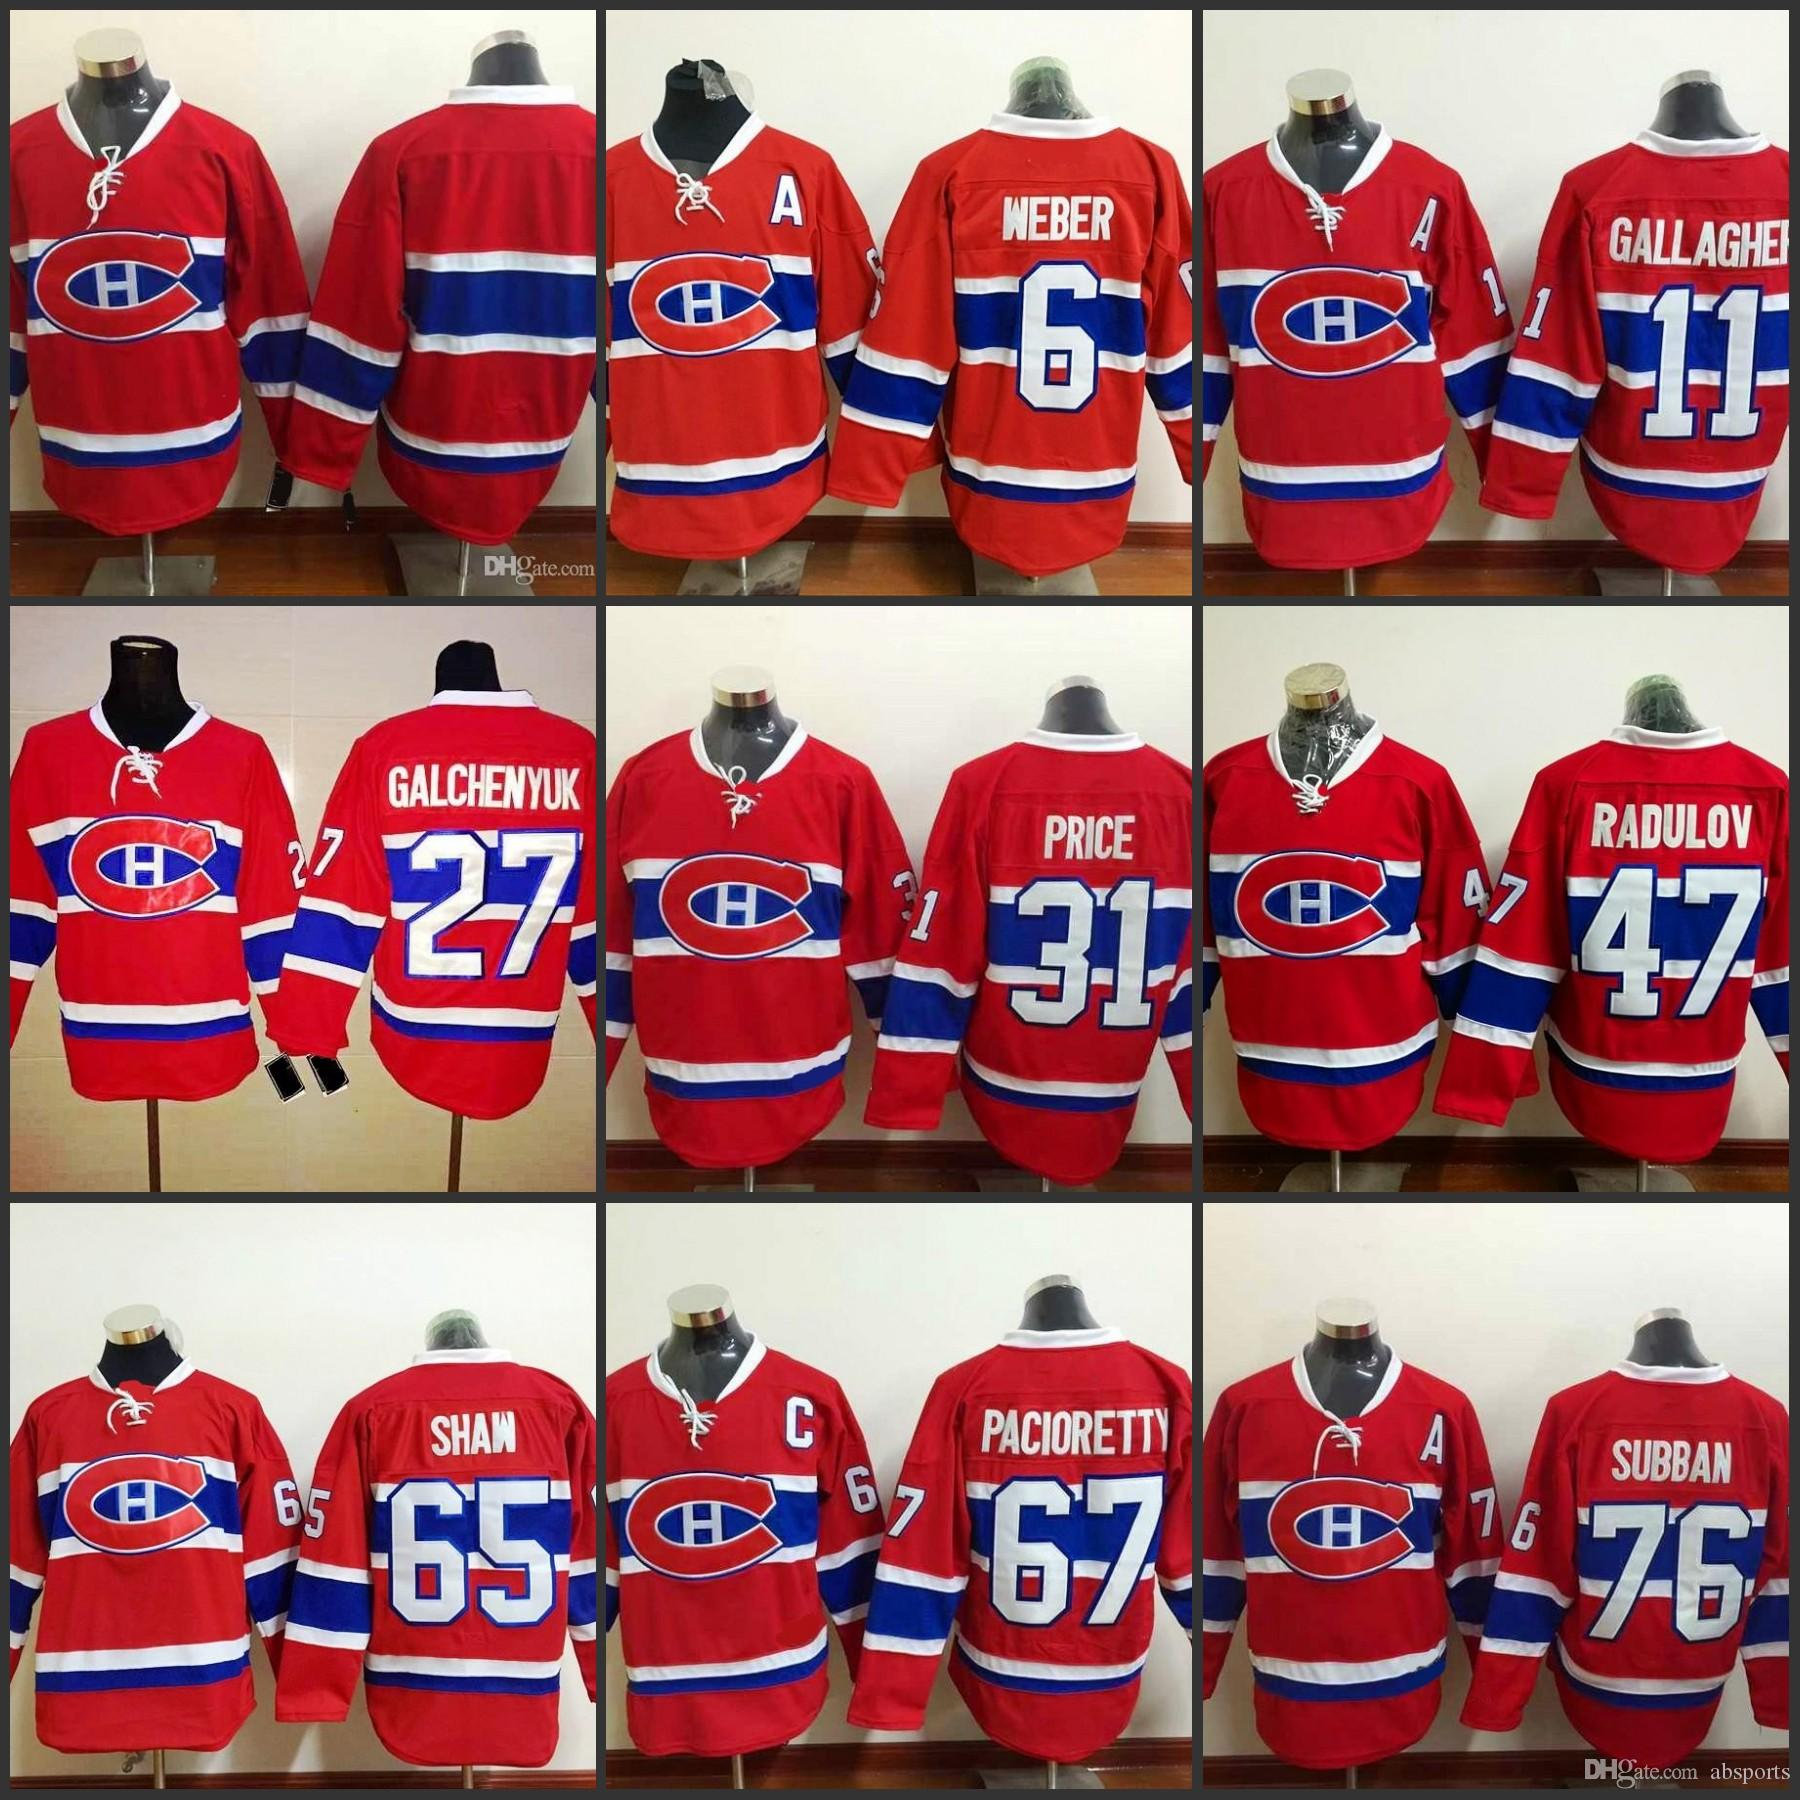 0a477c10eaa ... coupon 2018 montreal canadiens premier red home jerseys 67 max  pacioretty 11 brendan gallagher 76 subban